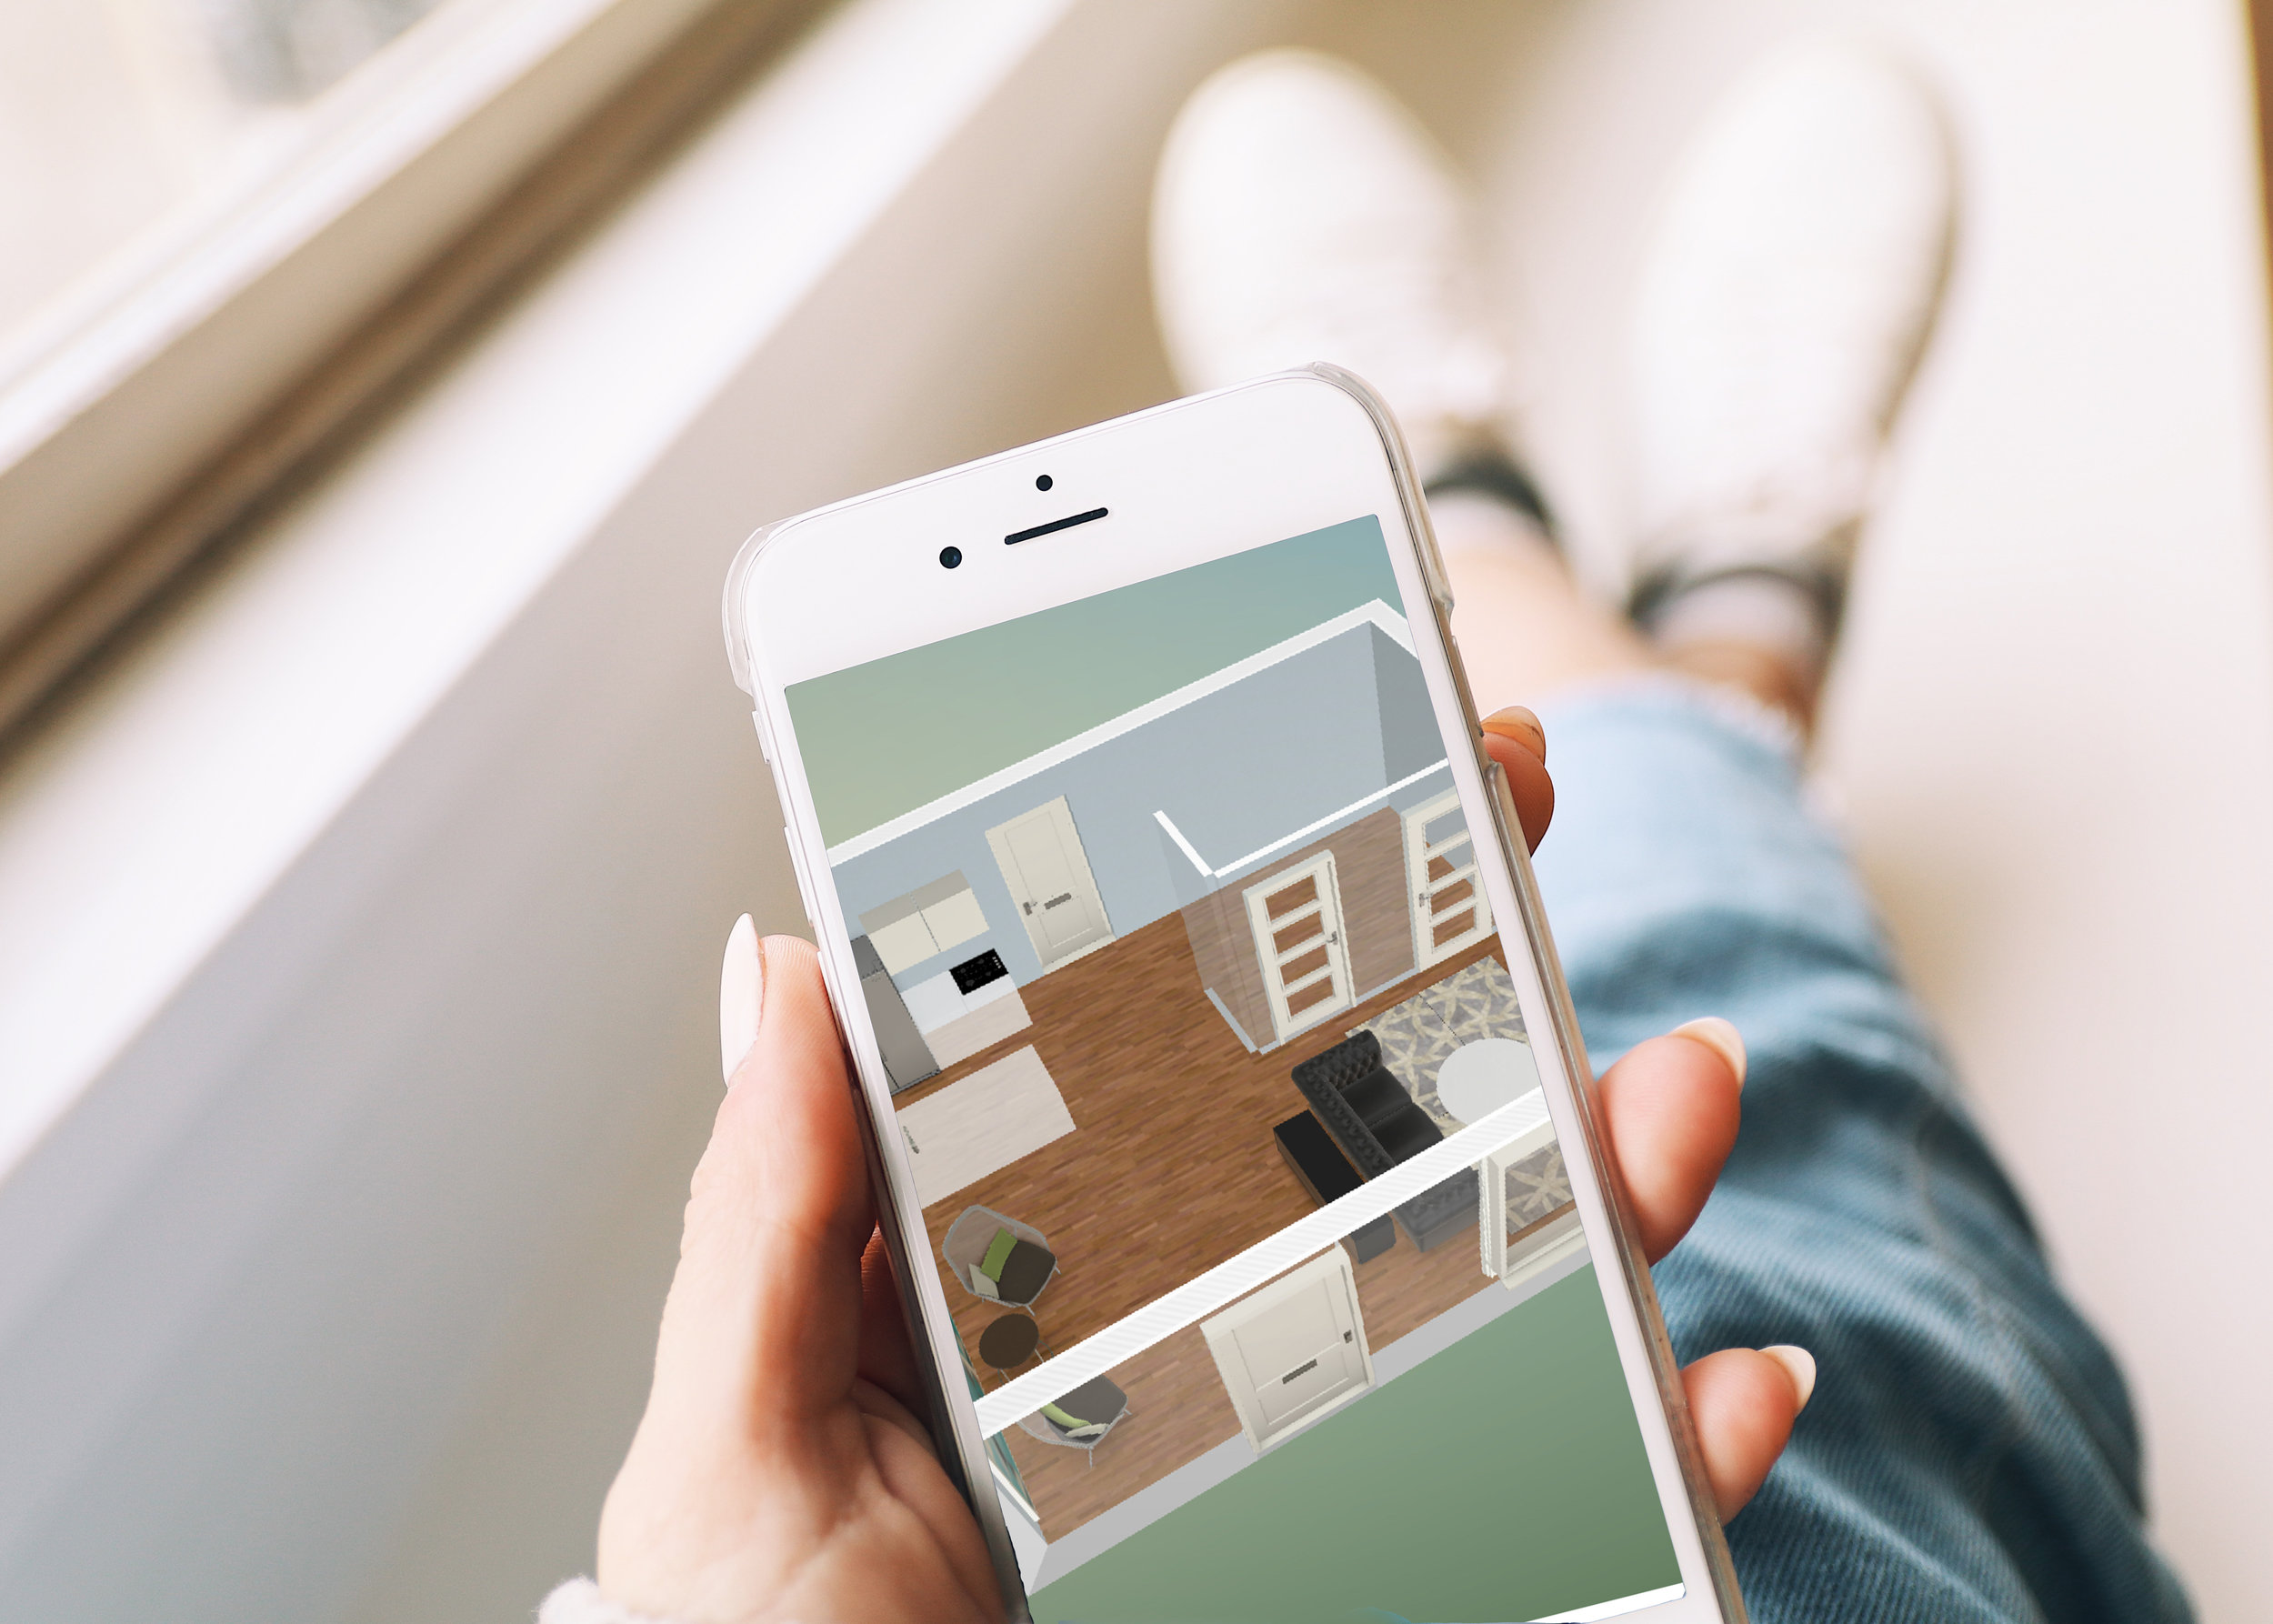 6 Furniture Layout Apps To Design Your Dream Home